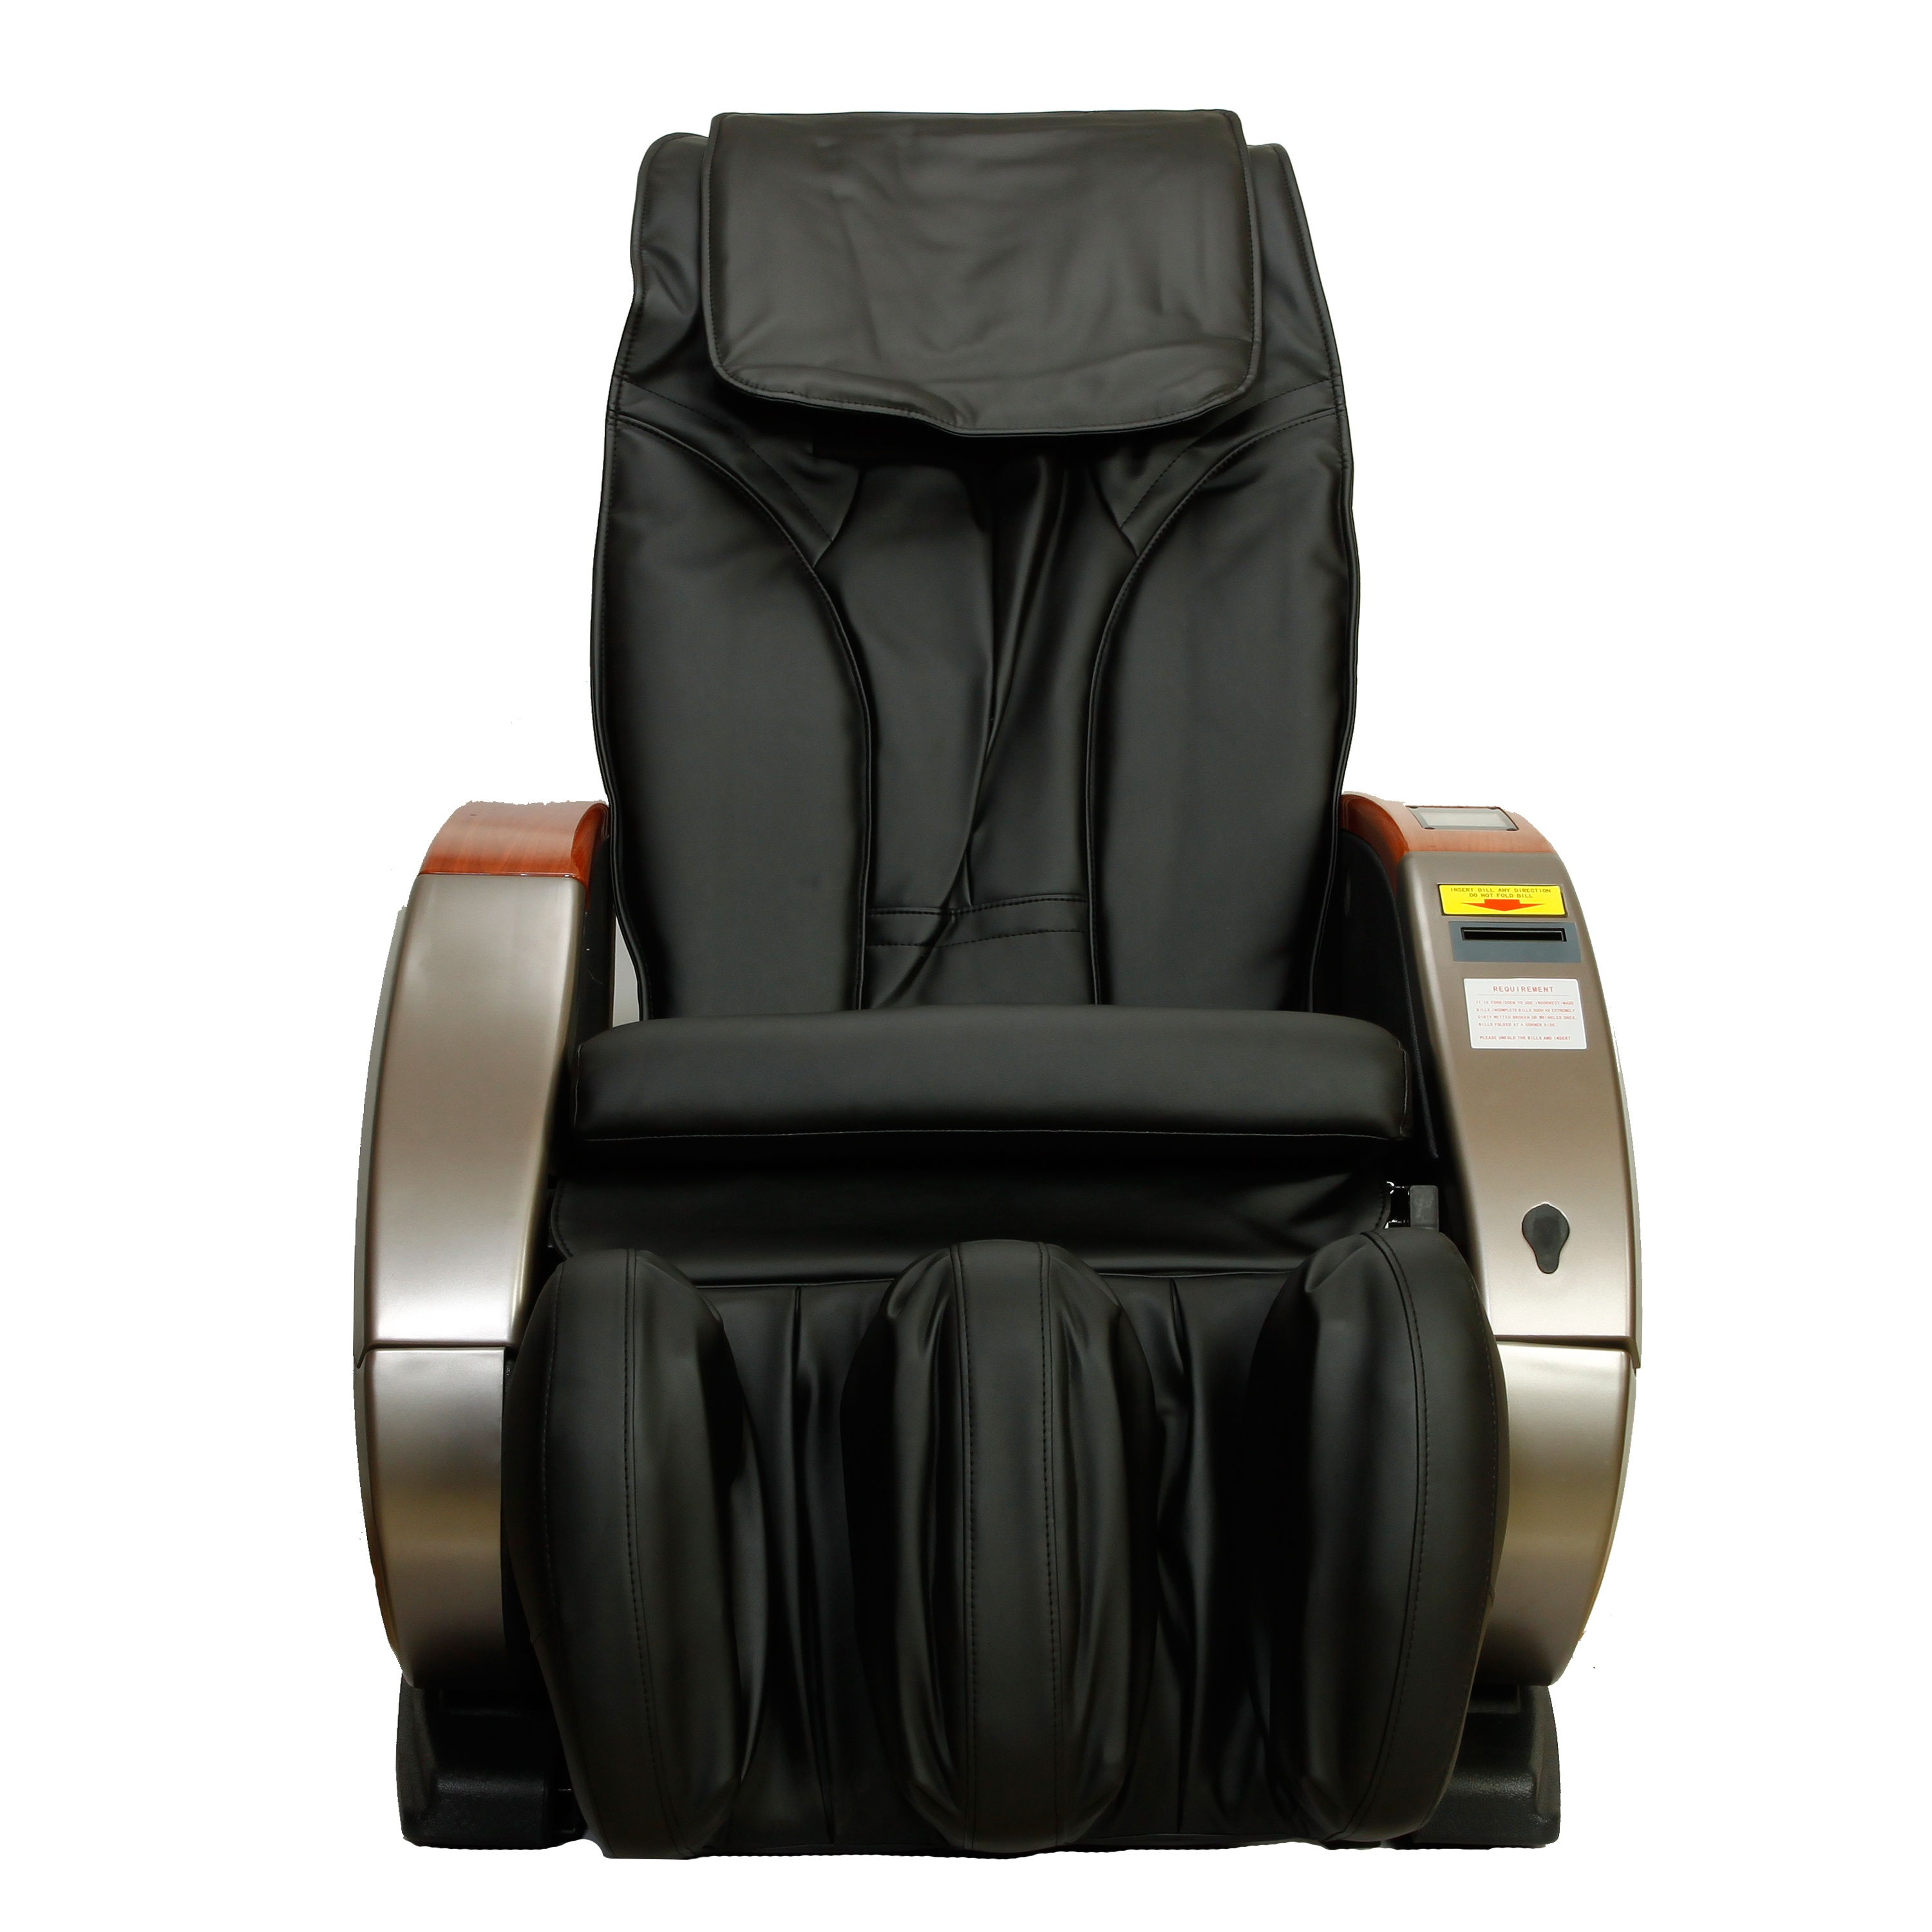 boost your business with a vending massage chair